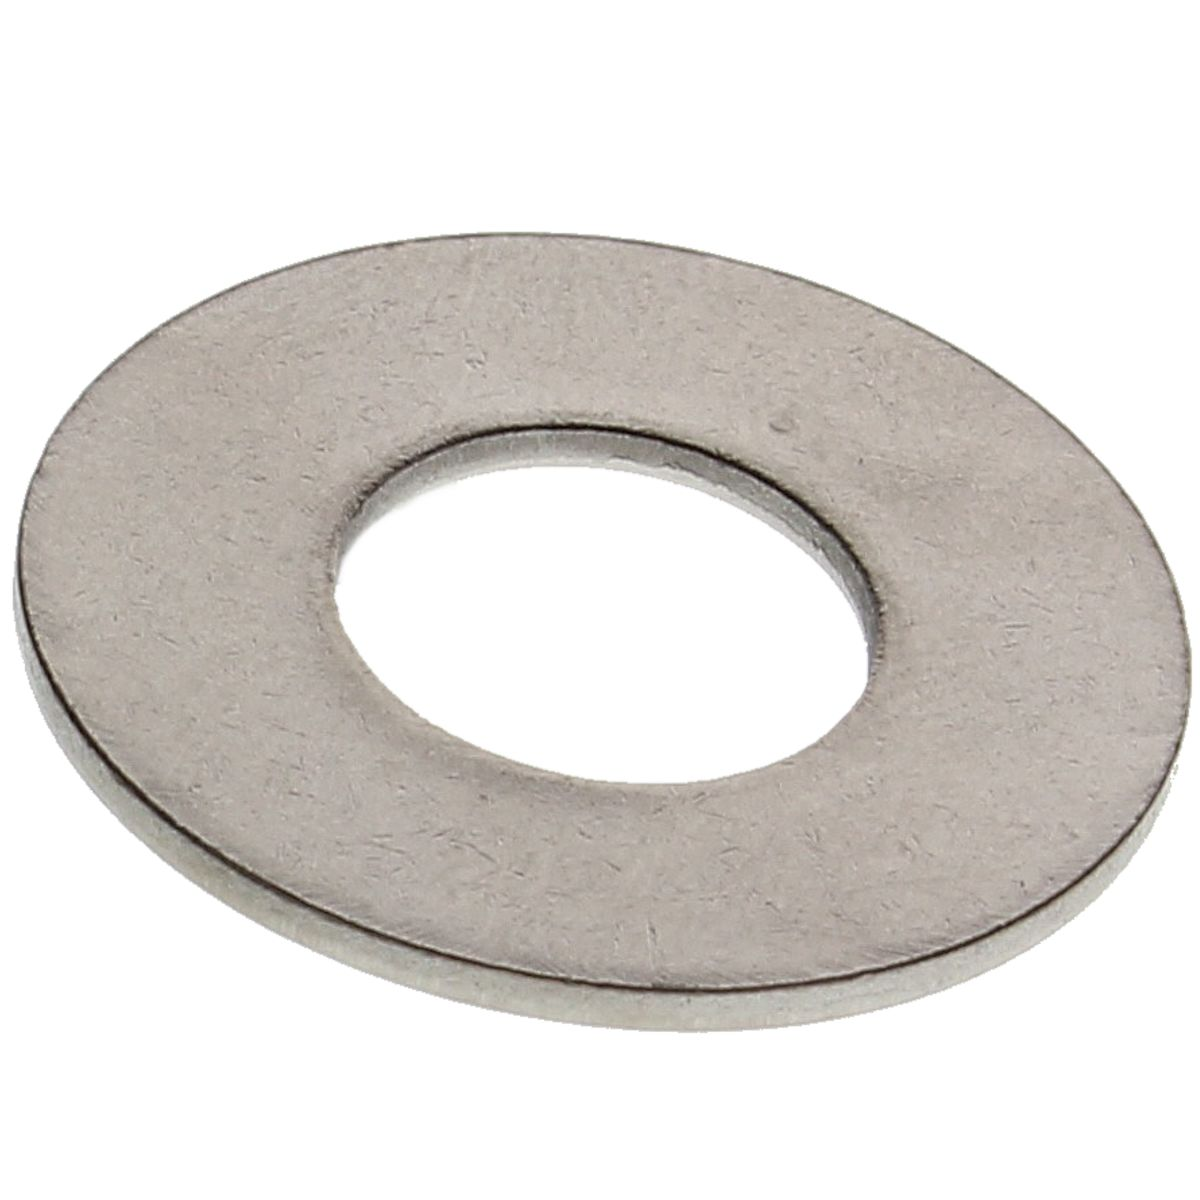 """1-1/8"""" x 2-1/2"""" x .120-.133"""" Flat Washers — Type 316 Stainless Steel, 1/PKG"""